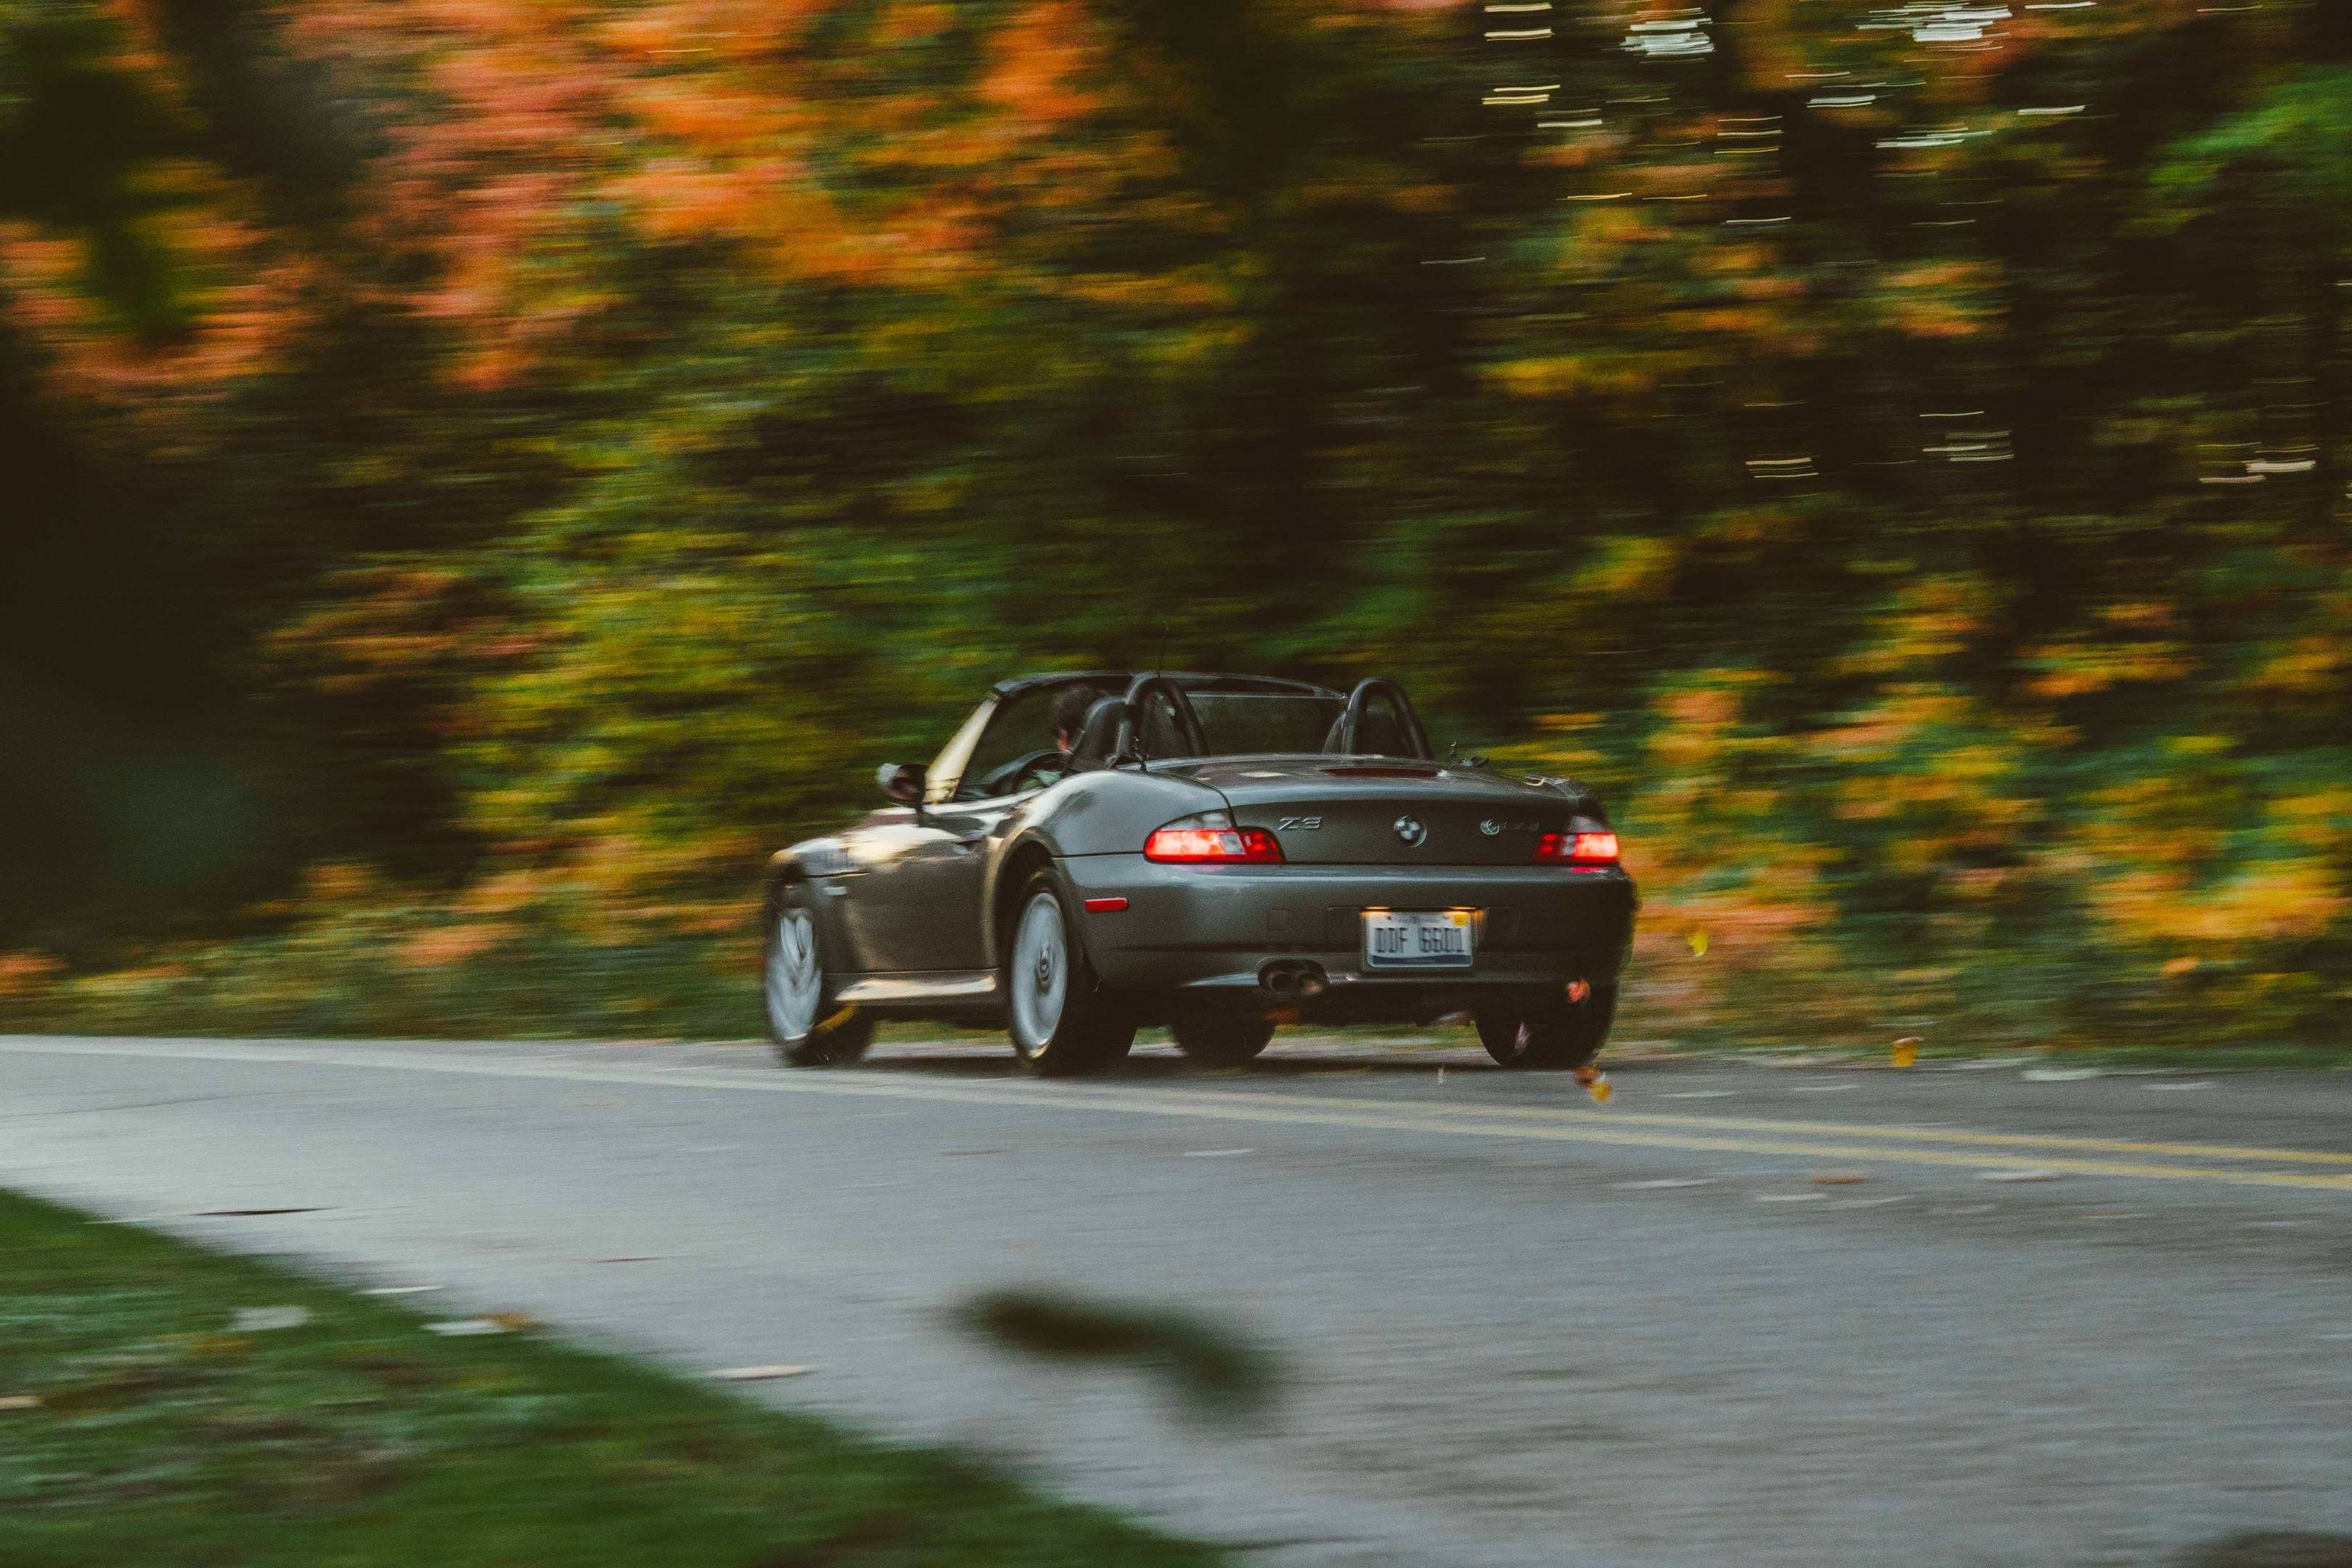 2001 BMW Z3 2.5i driving by